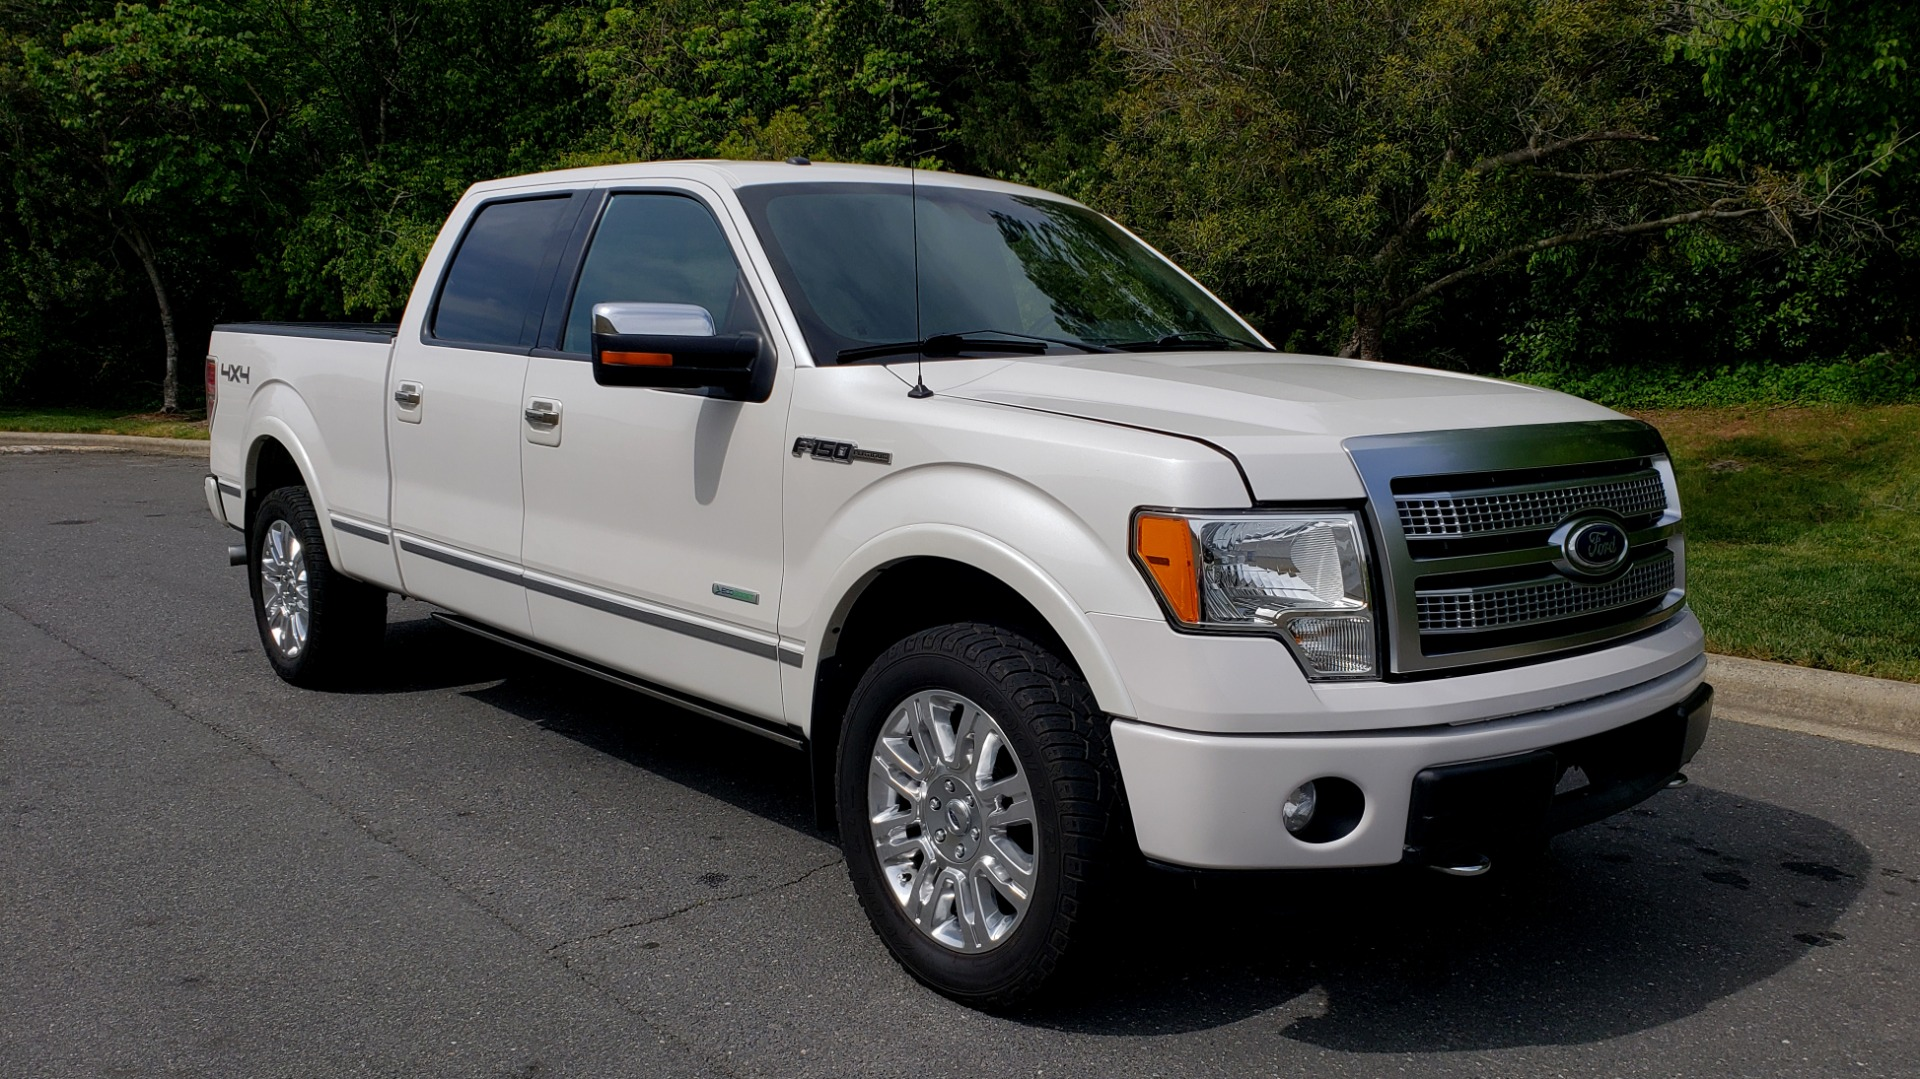 Used 2011 Ford F-150 PLATINUM 4X4 SUPERCREW / NAV / SUNROOF / SONY / REARVIEW for sale Sold at Formula Imports in Charlotte NC 28227 4